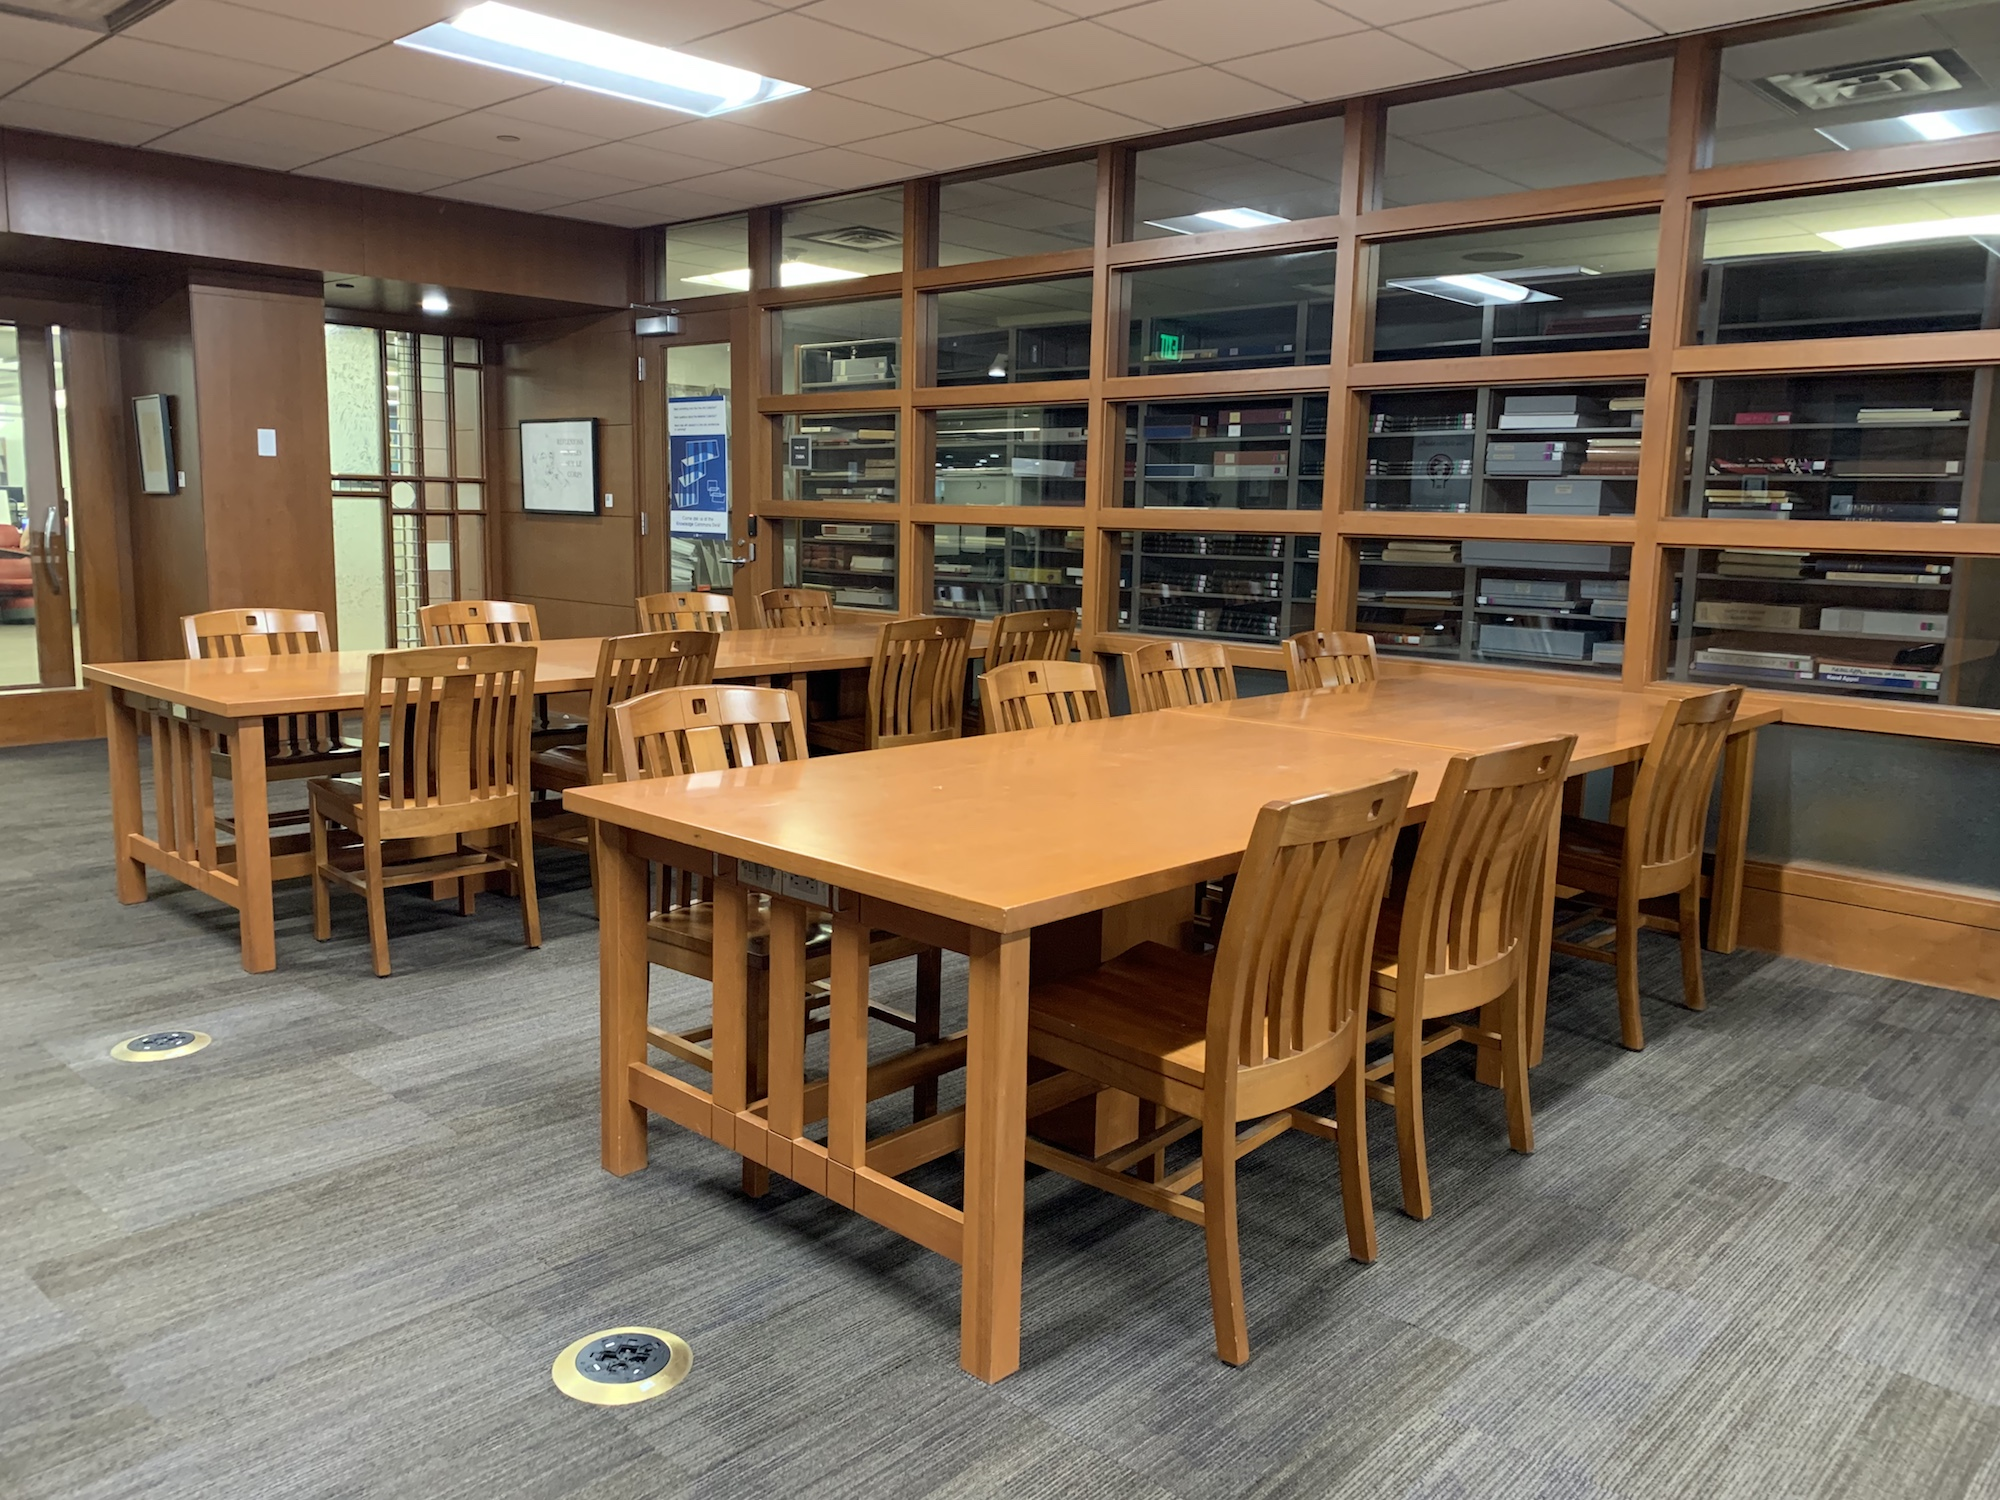 The two large tables that can be used by students to study in the fine arts library.